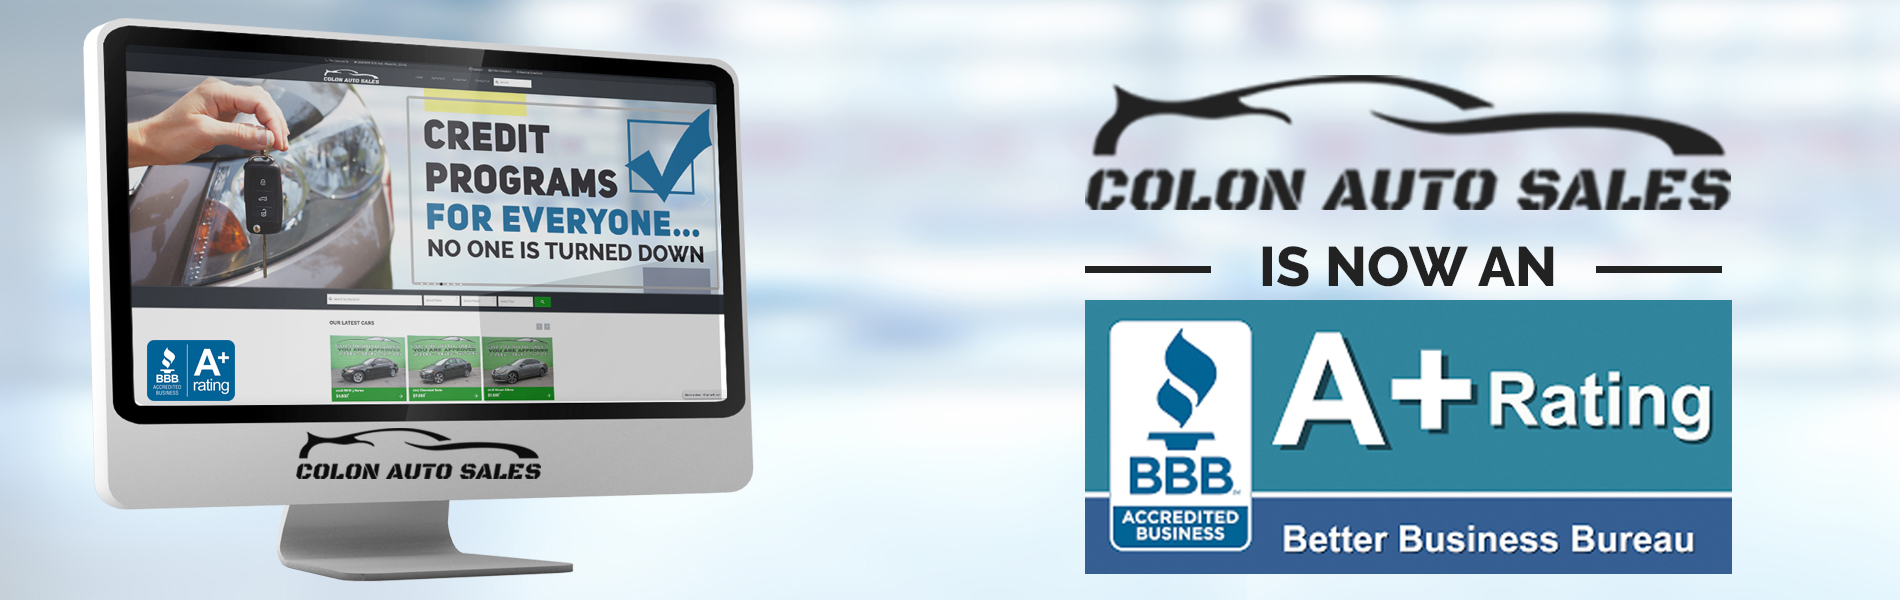 Colon Auto Sales is now an A+ Rating with the BBB